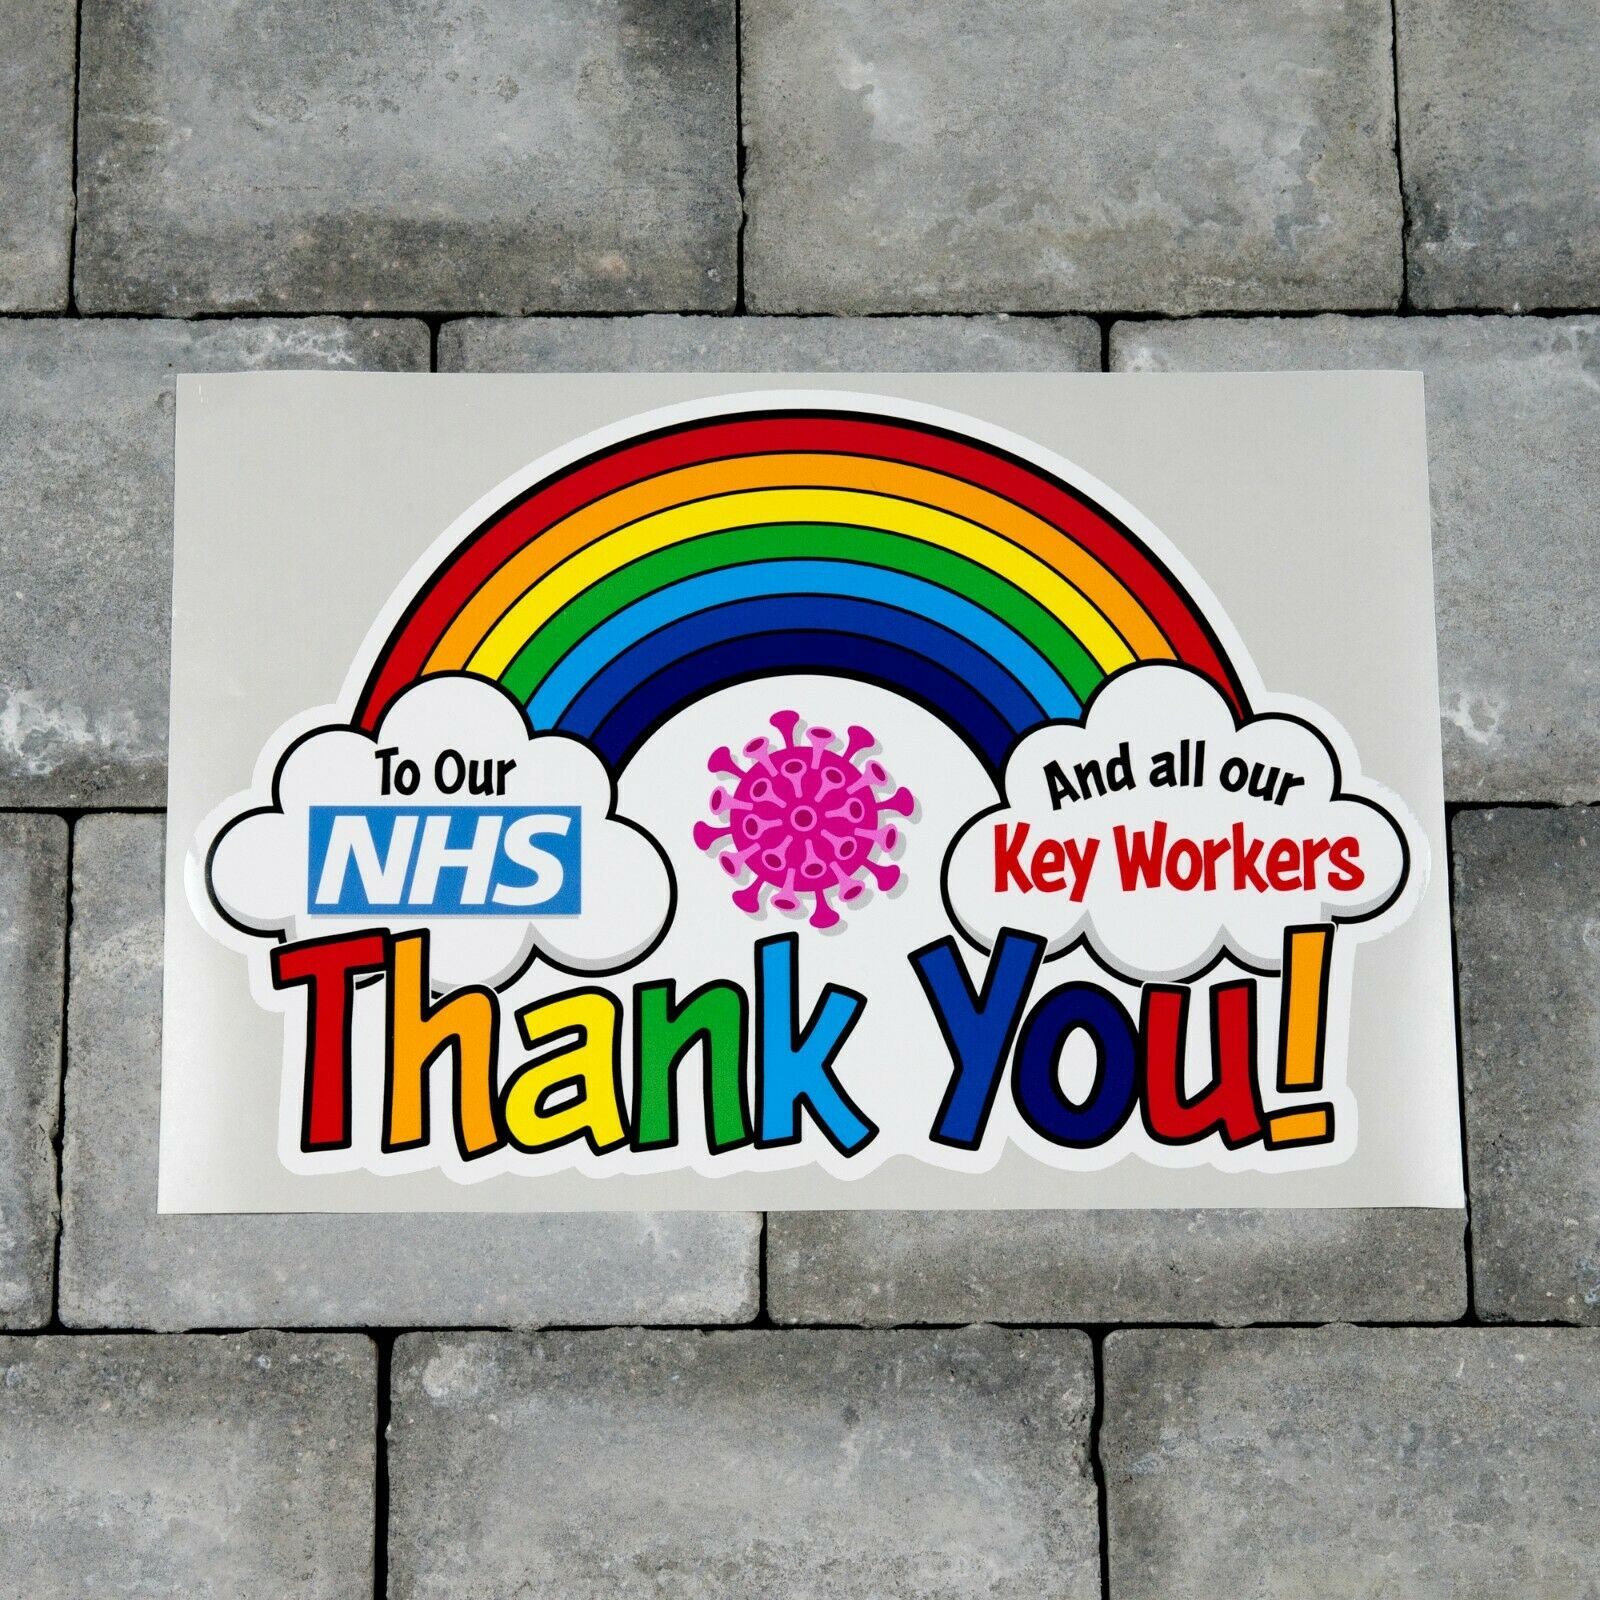 Home Decoration - Rainbow Window / Wall Sticker Thank You NHS And Key Workers Charity Decal - B